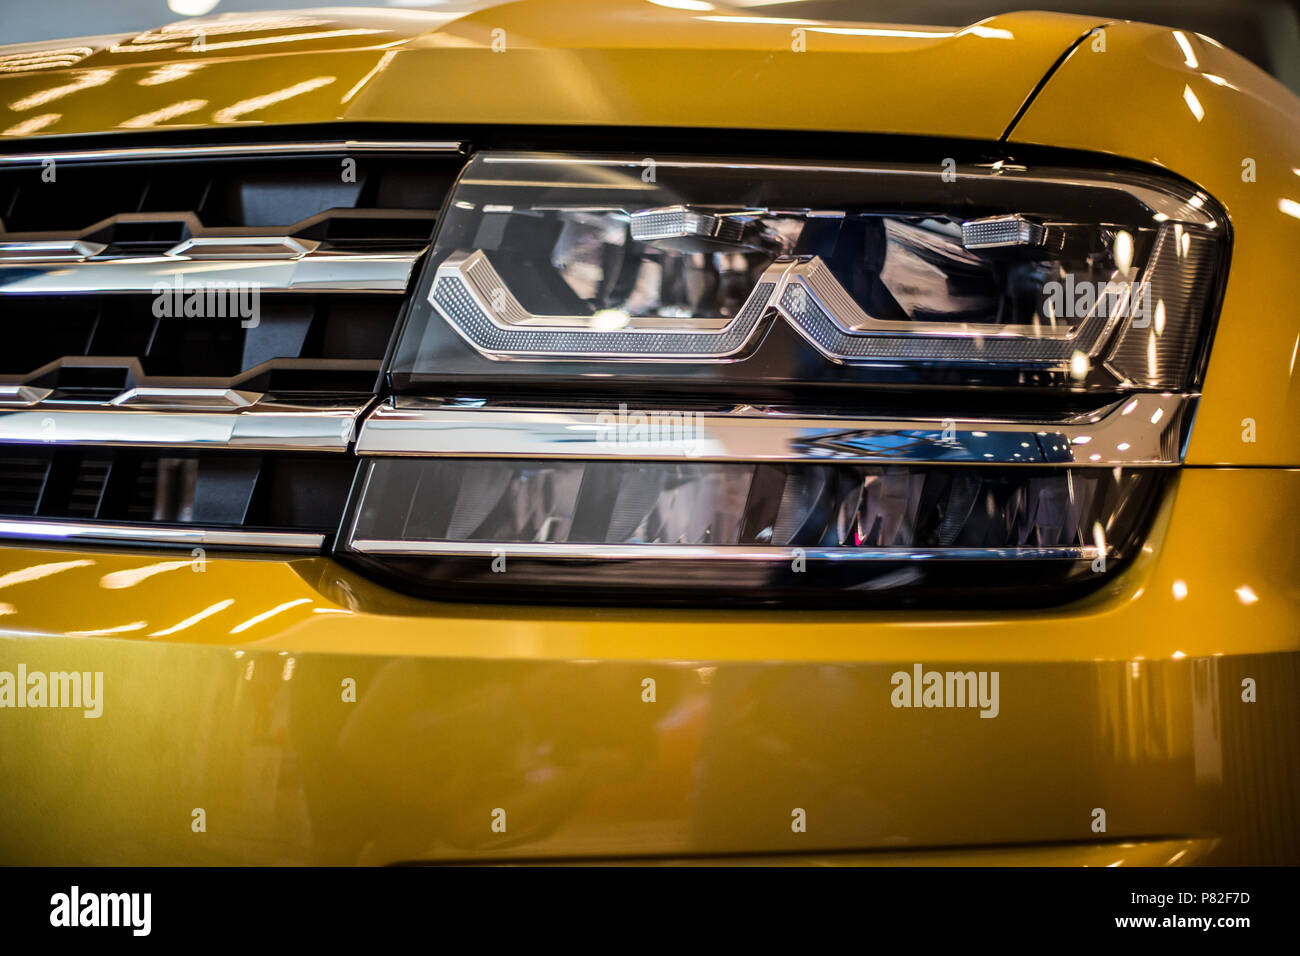 headlight of modern yellow car with led and xenon optics - Stock Image